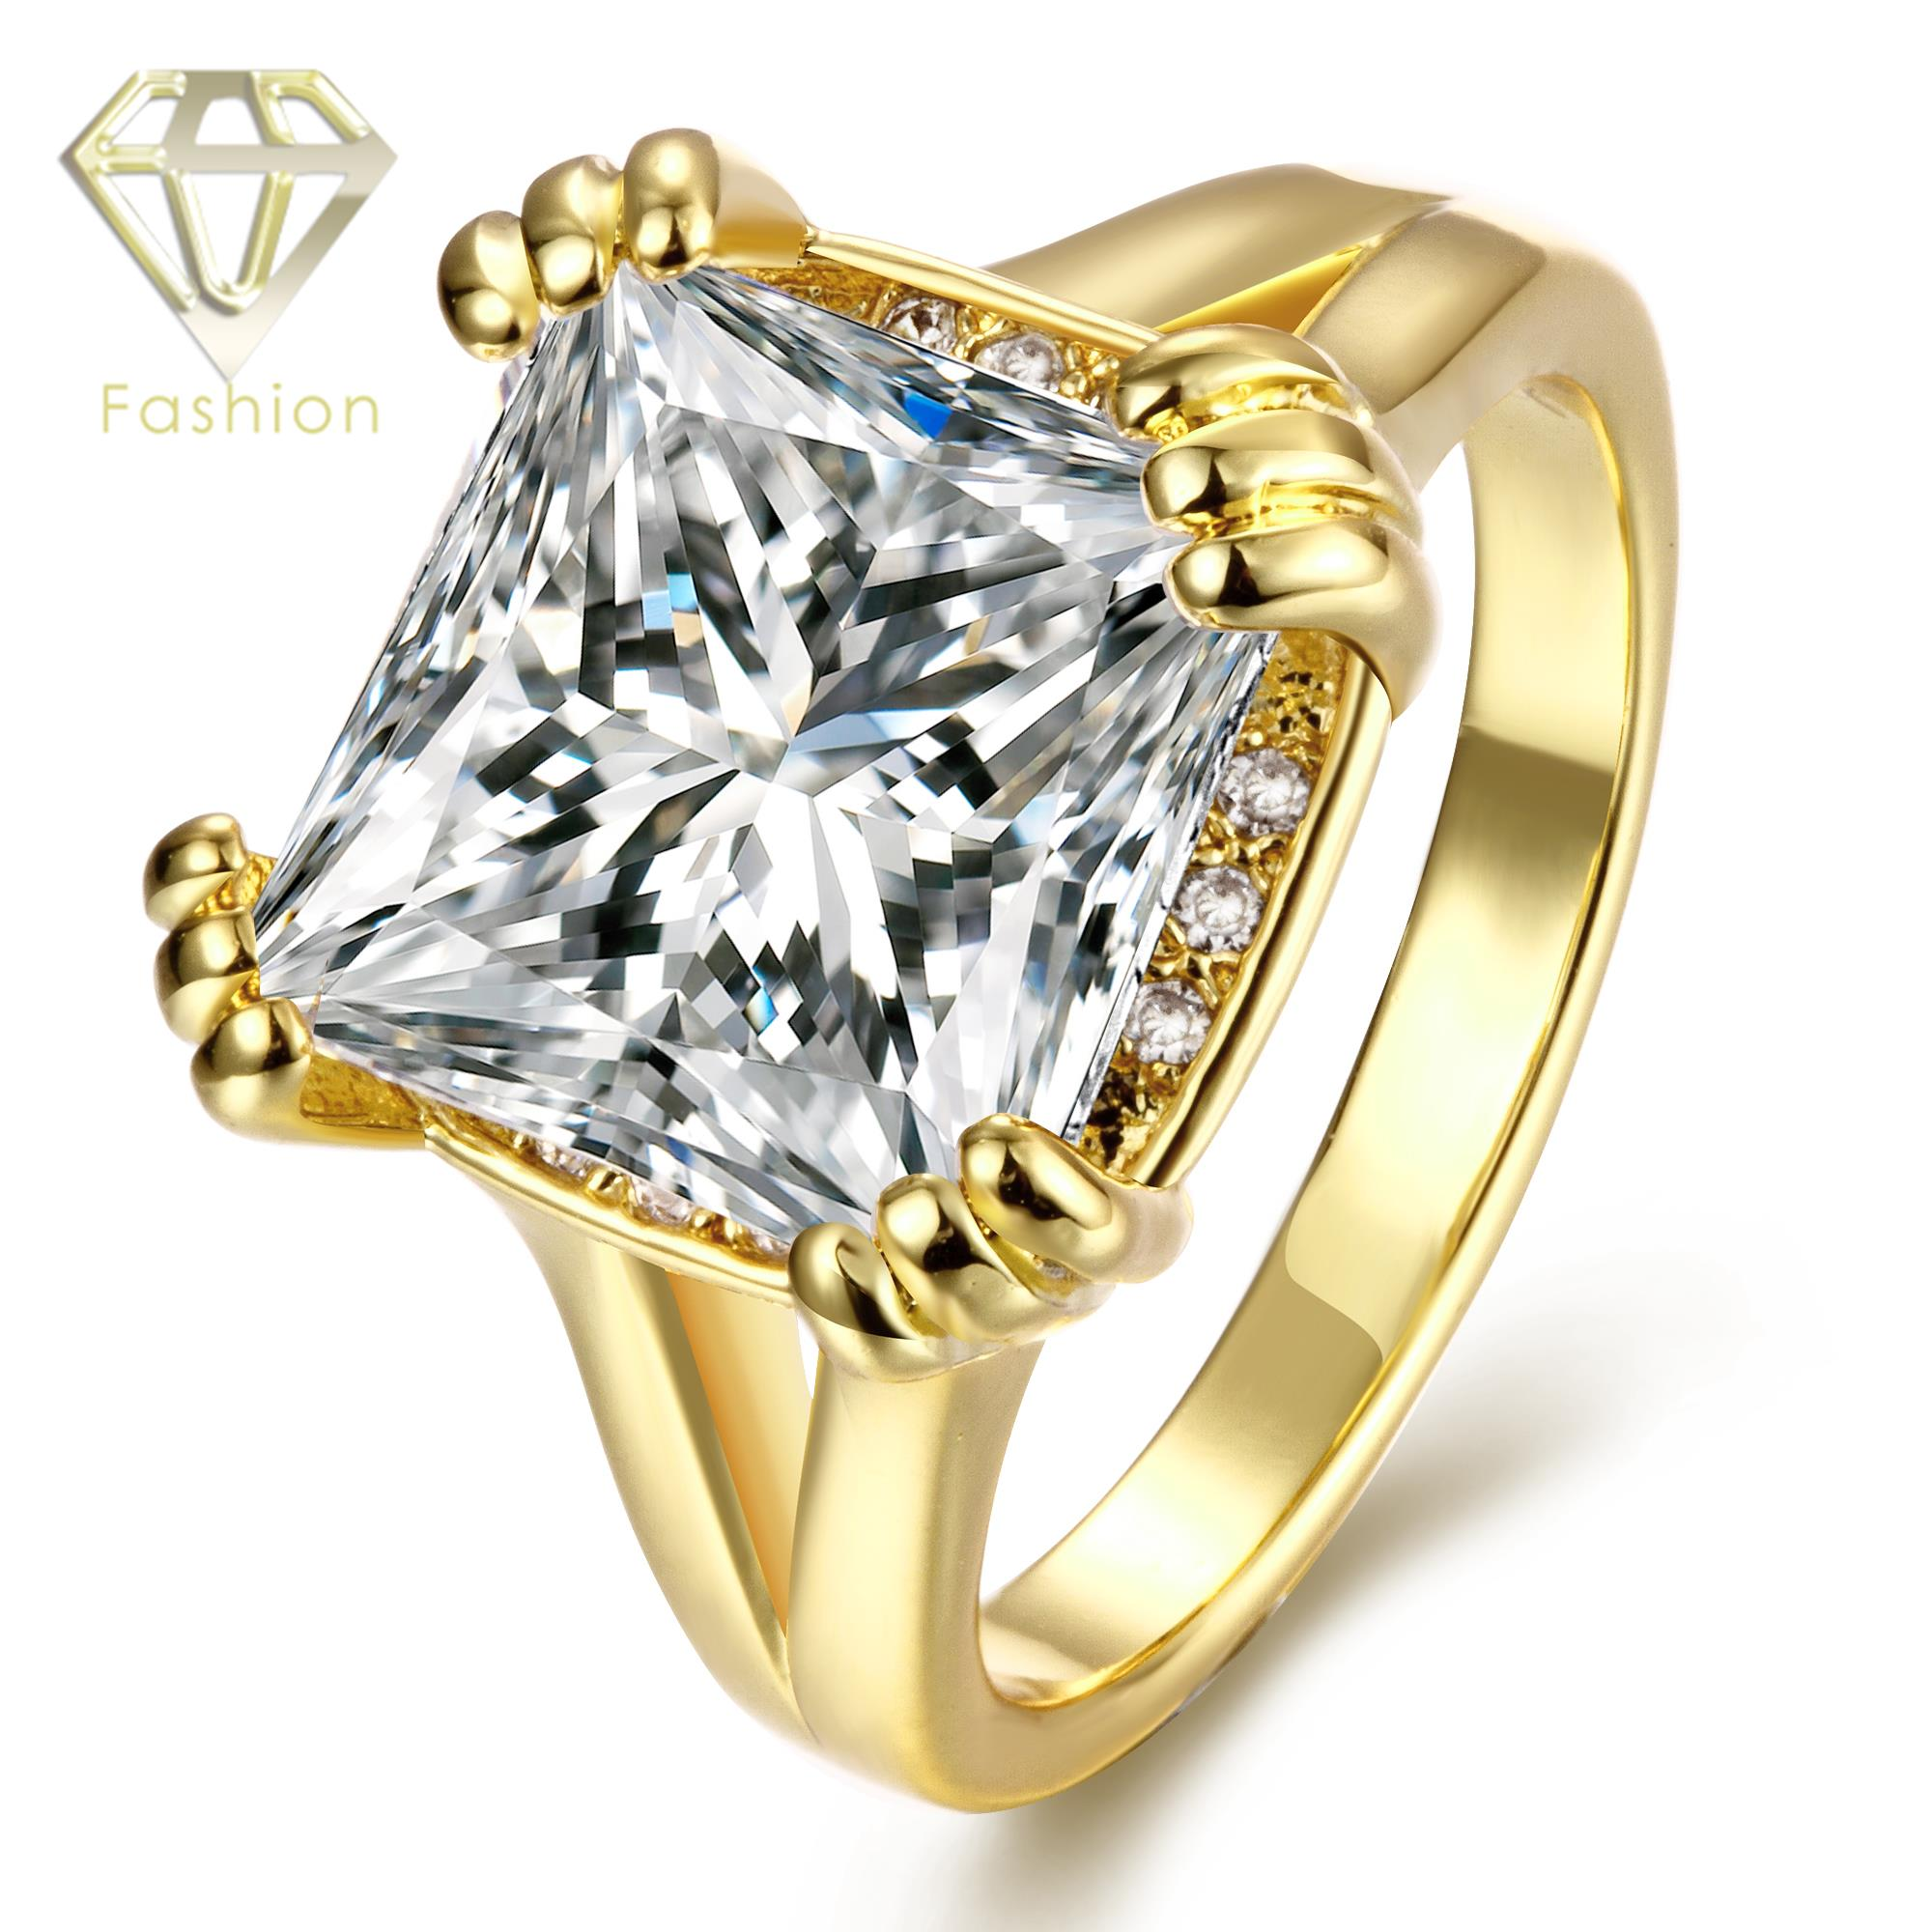 mediterranean joyas women venta rings gold for de addictedto en online jewellery